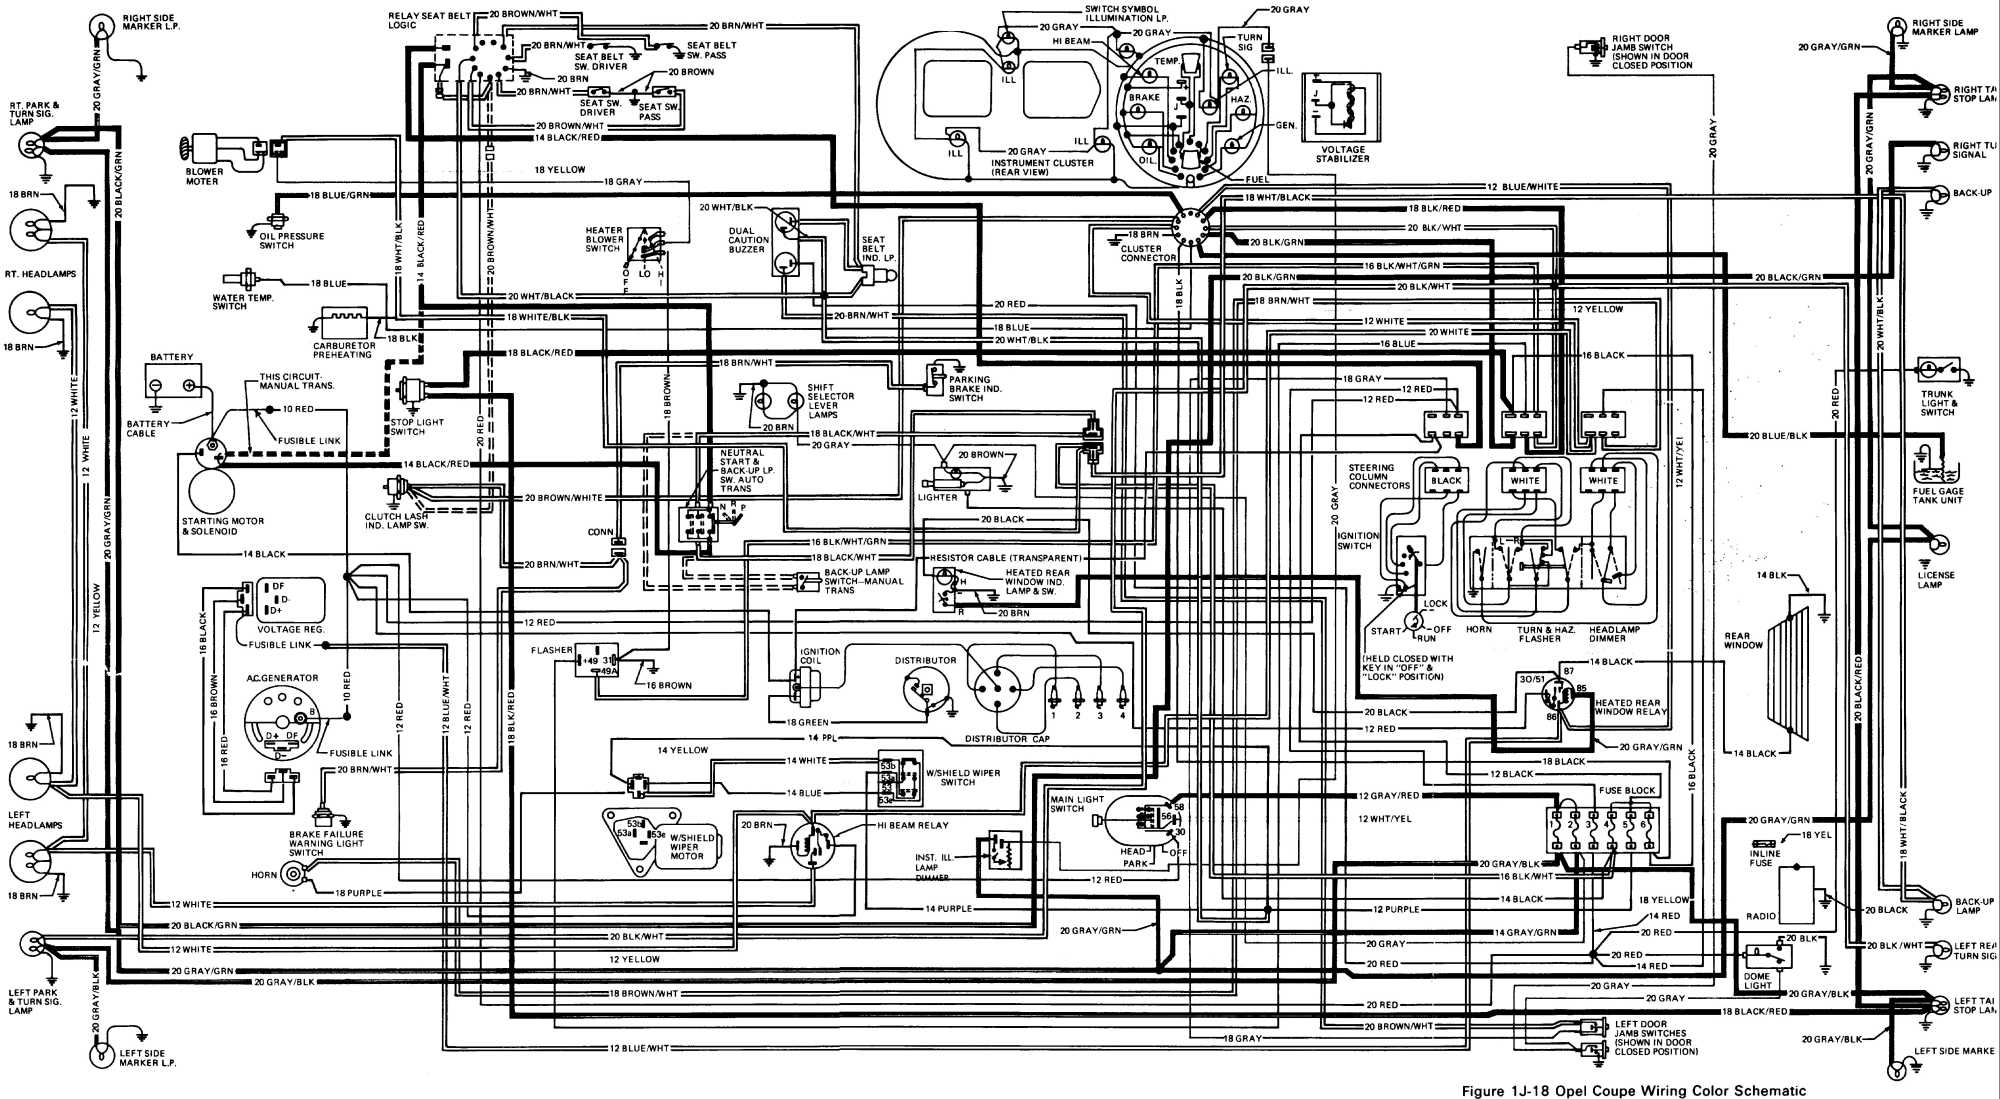 Opel Engine Schematics - Automotive Wiring Diagram •